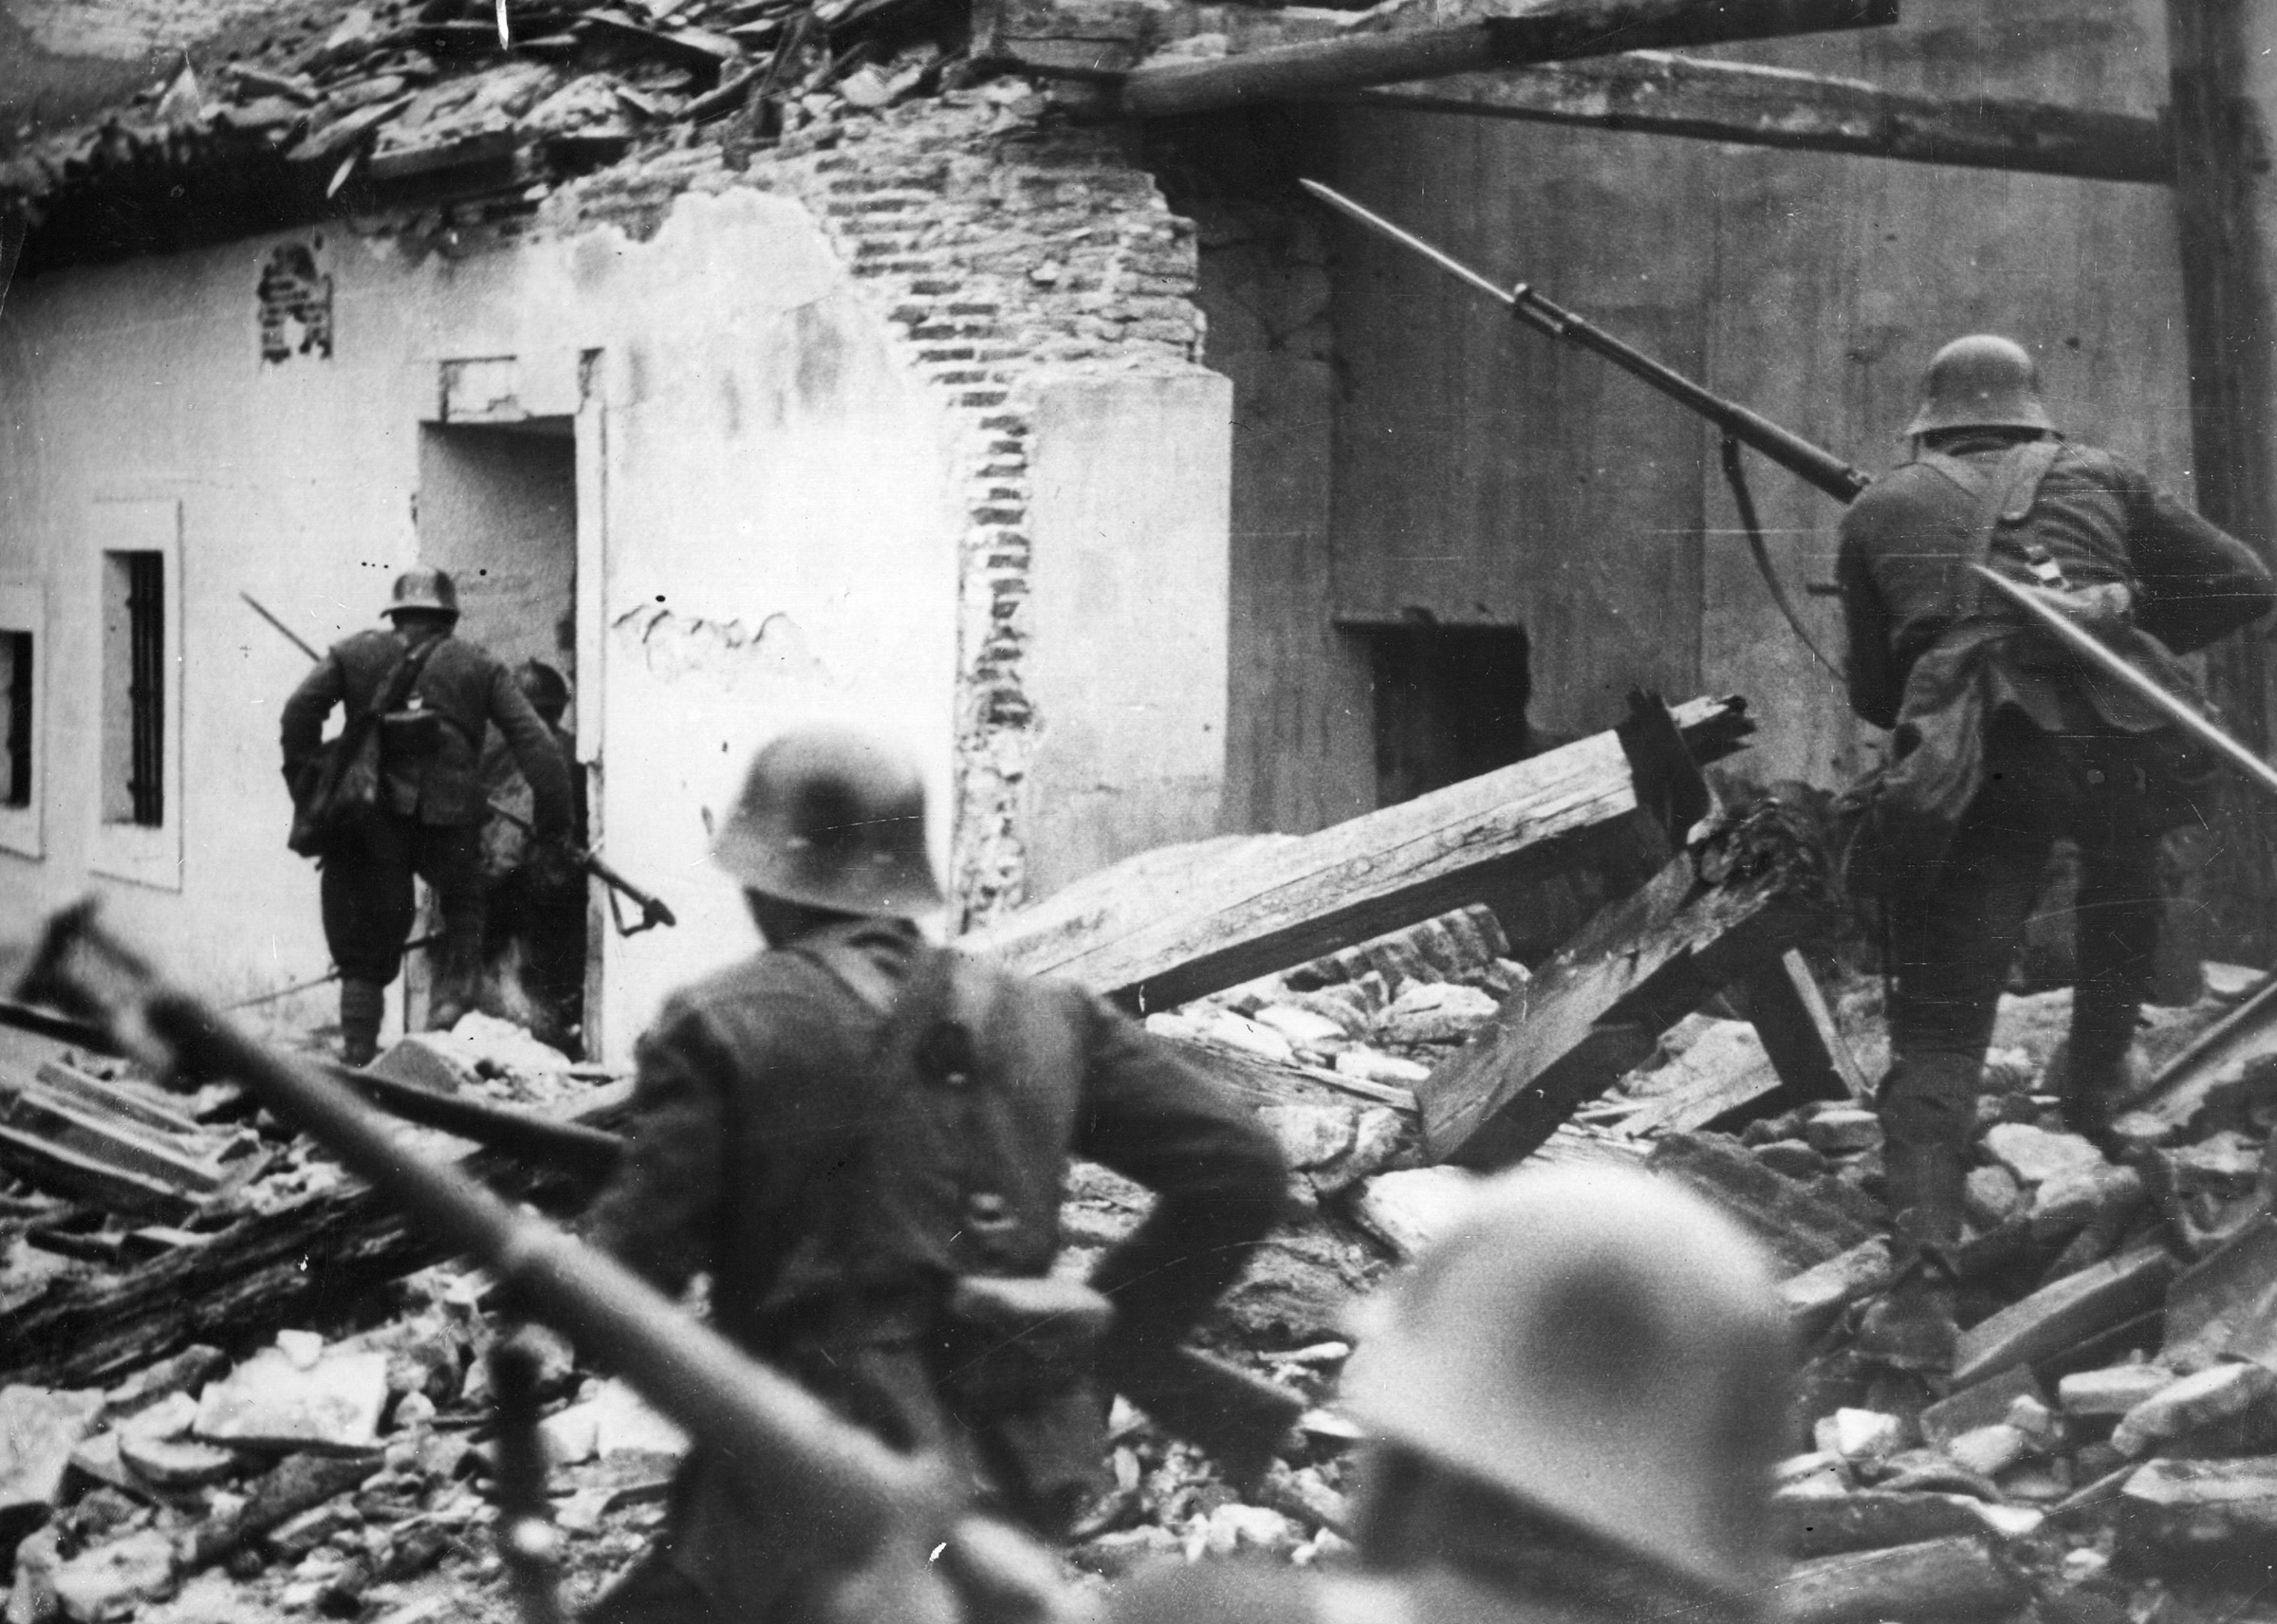 Nationalist troops advance through the debris of houses wrecked in air raids in Madrid, on April 2, 1937.